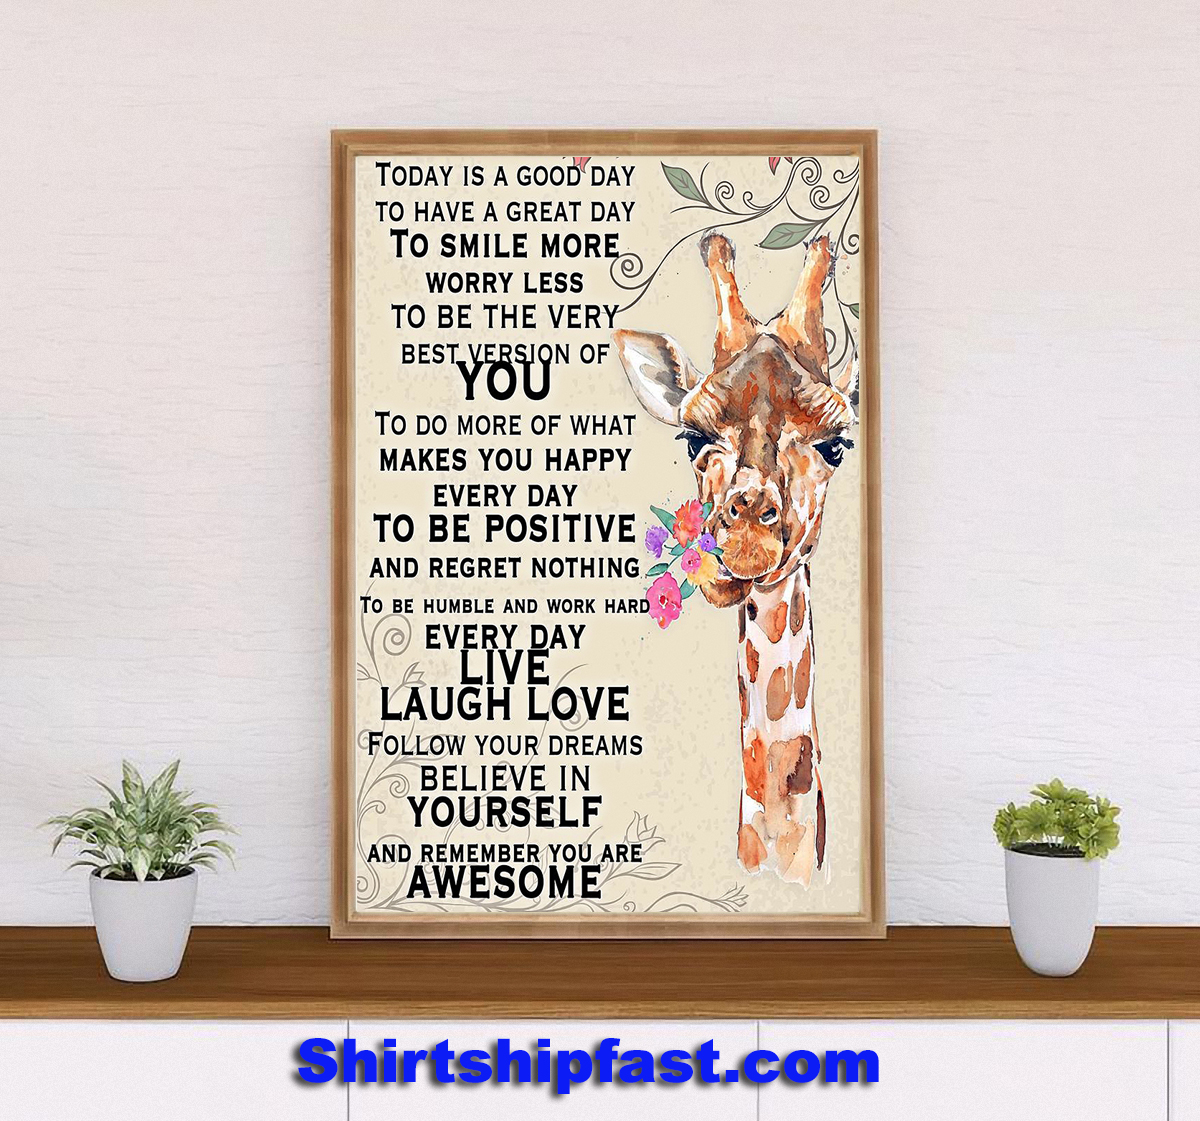 Giraffe today is a good day to have a great day poster - Picture 1